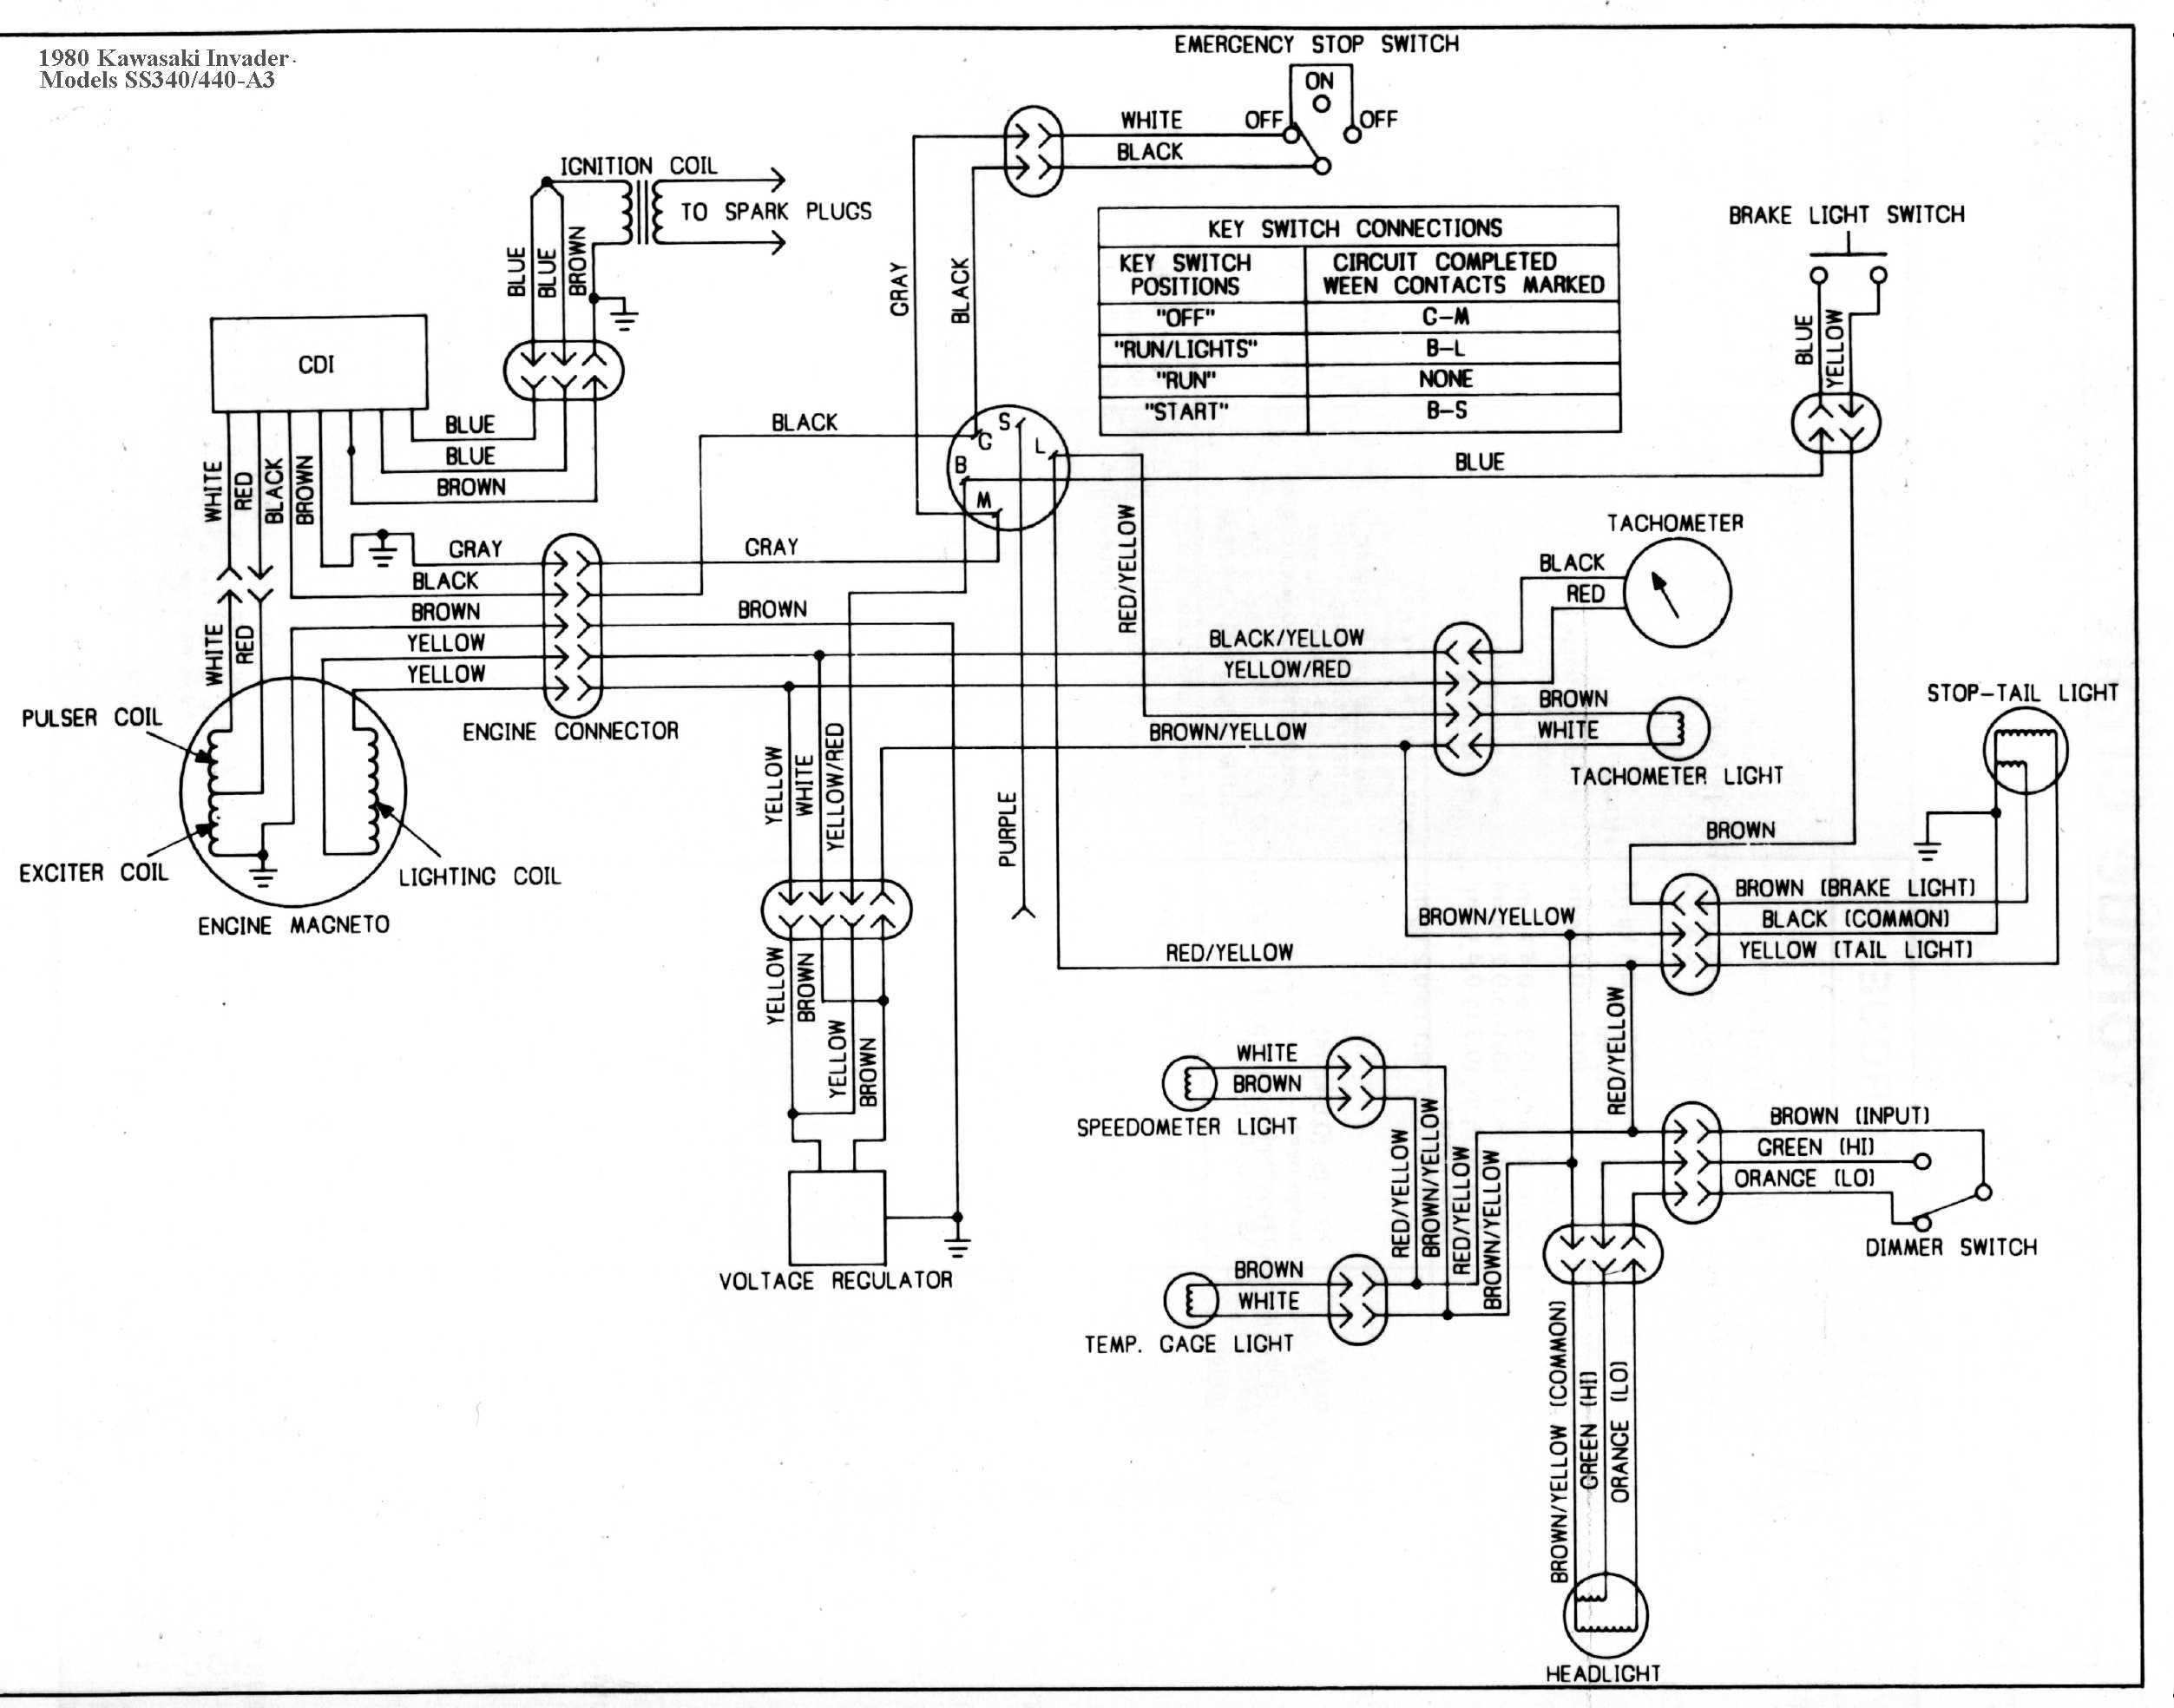 [DIAGRAM_4PO]  B67D 1980 Yamaha Srx Snowmobile Service Repair Manuals 440 340 | Wiring  Library | Vintage Snowmobile Wiring Diagram |  | Wiring Library